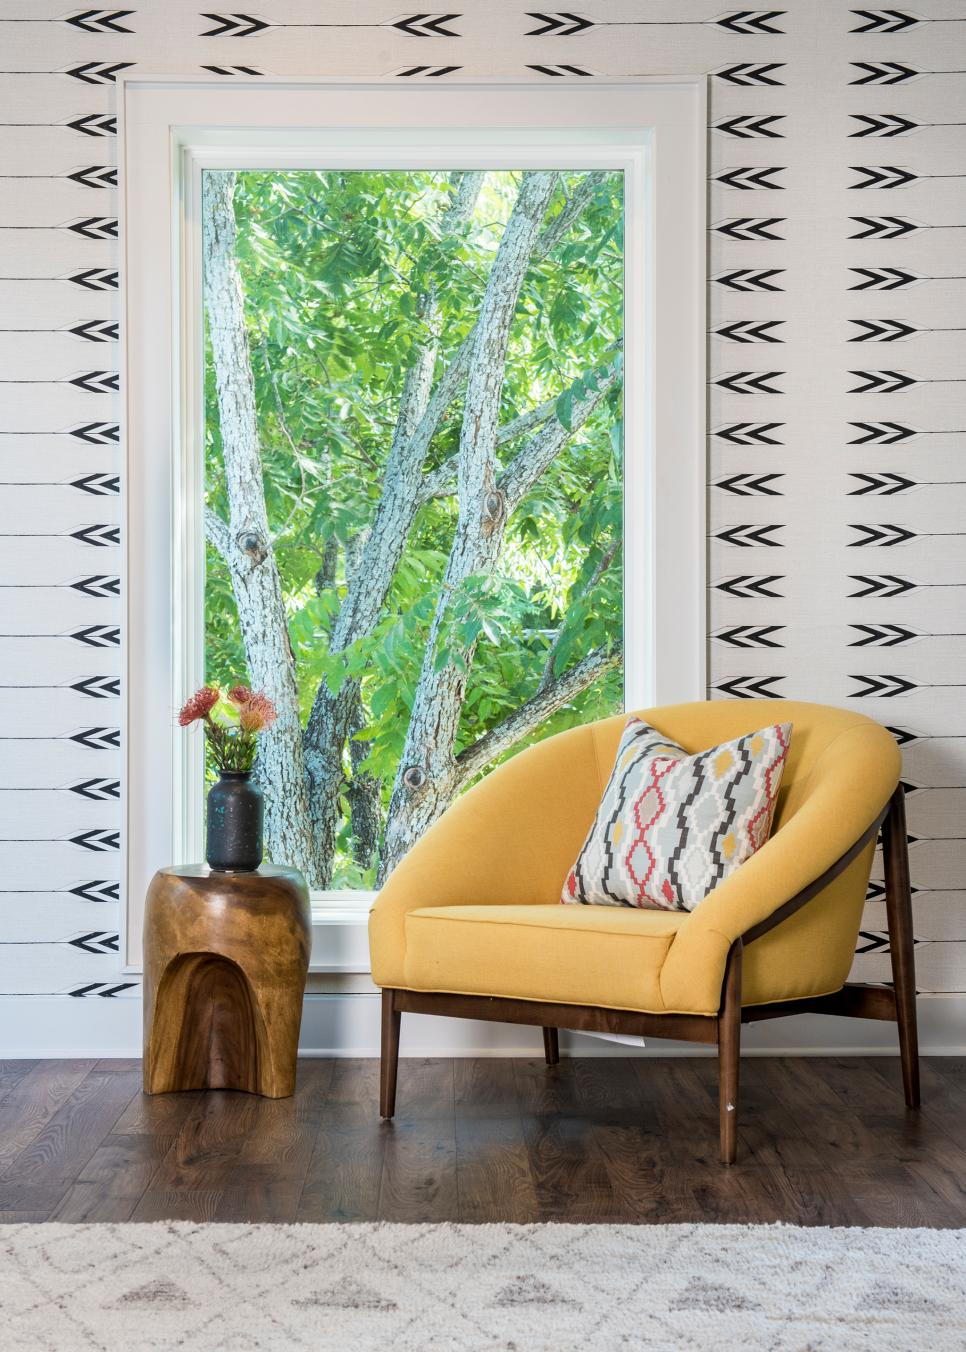 Yellow Midcentury Modern Chair and Southwestern Wallpaper